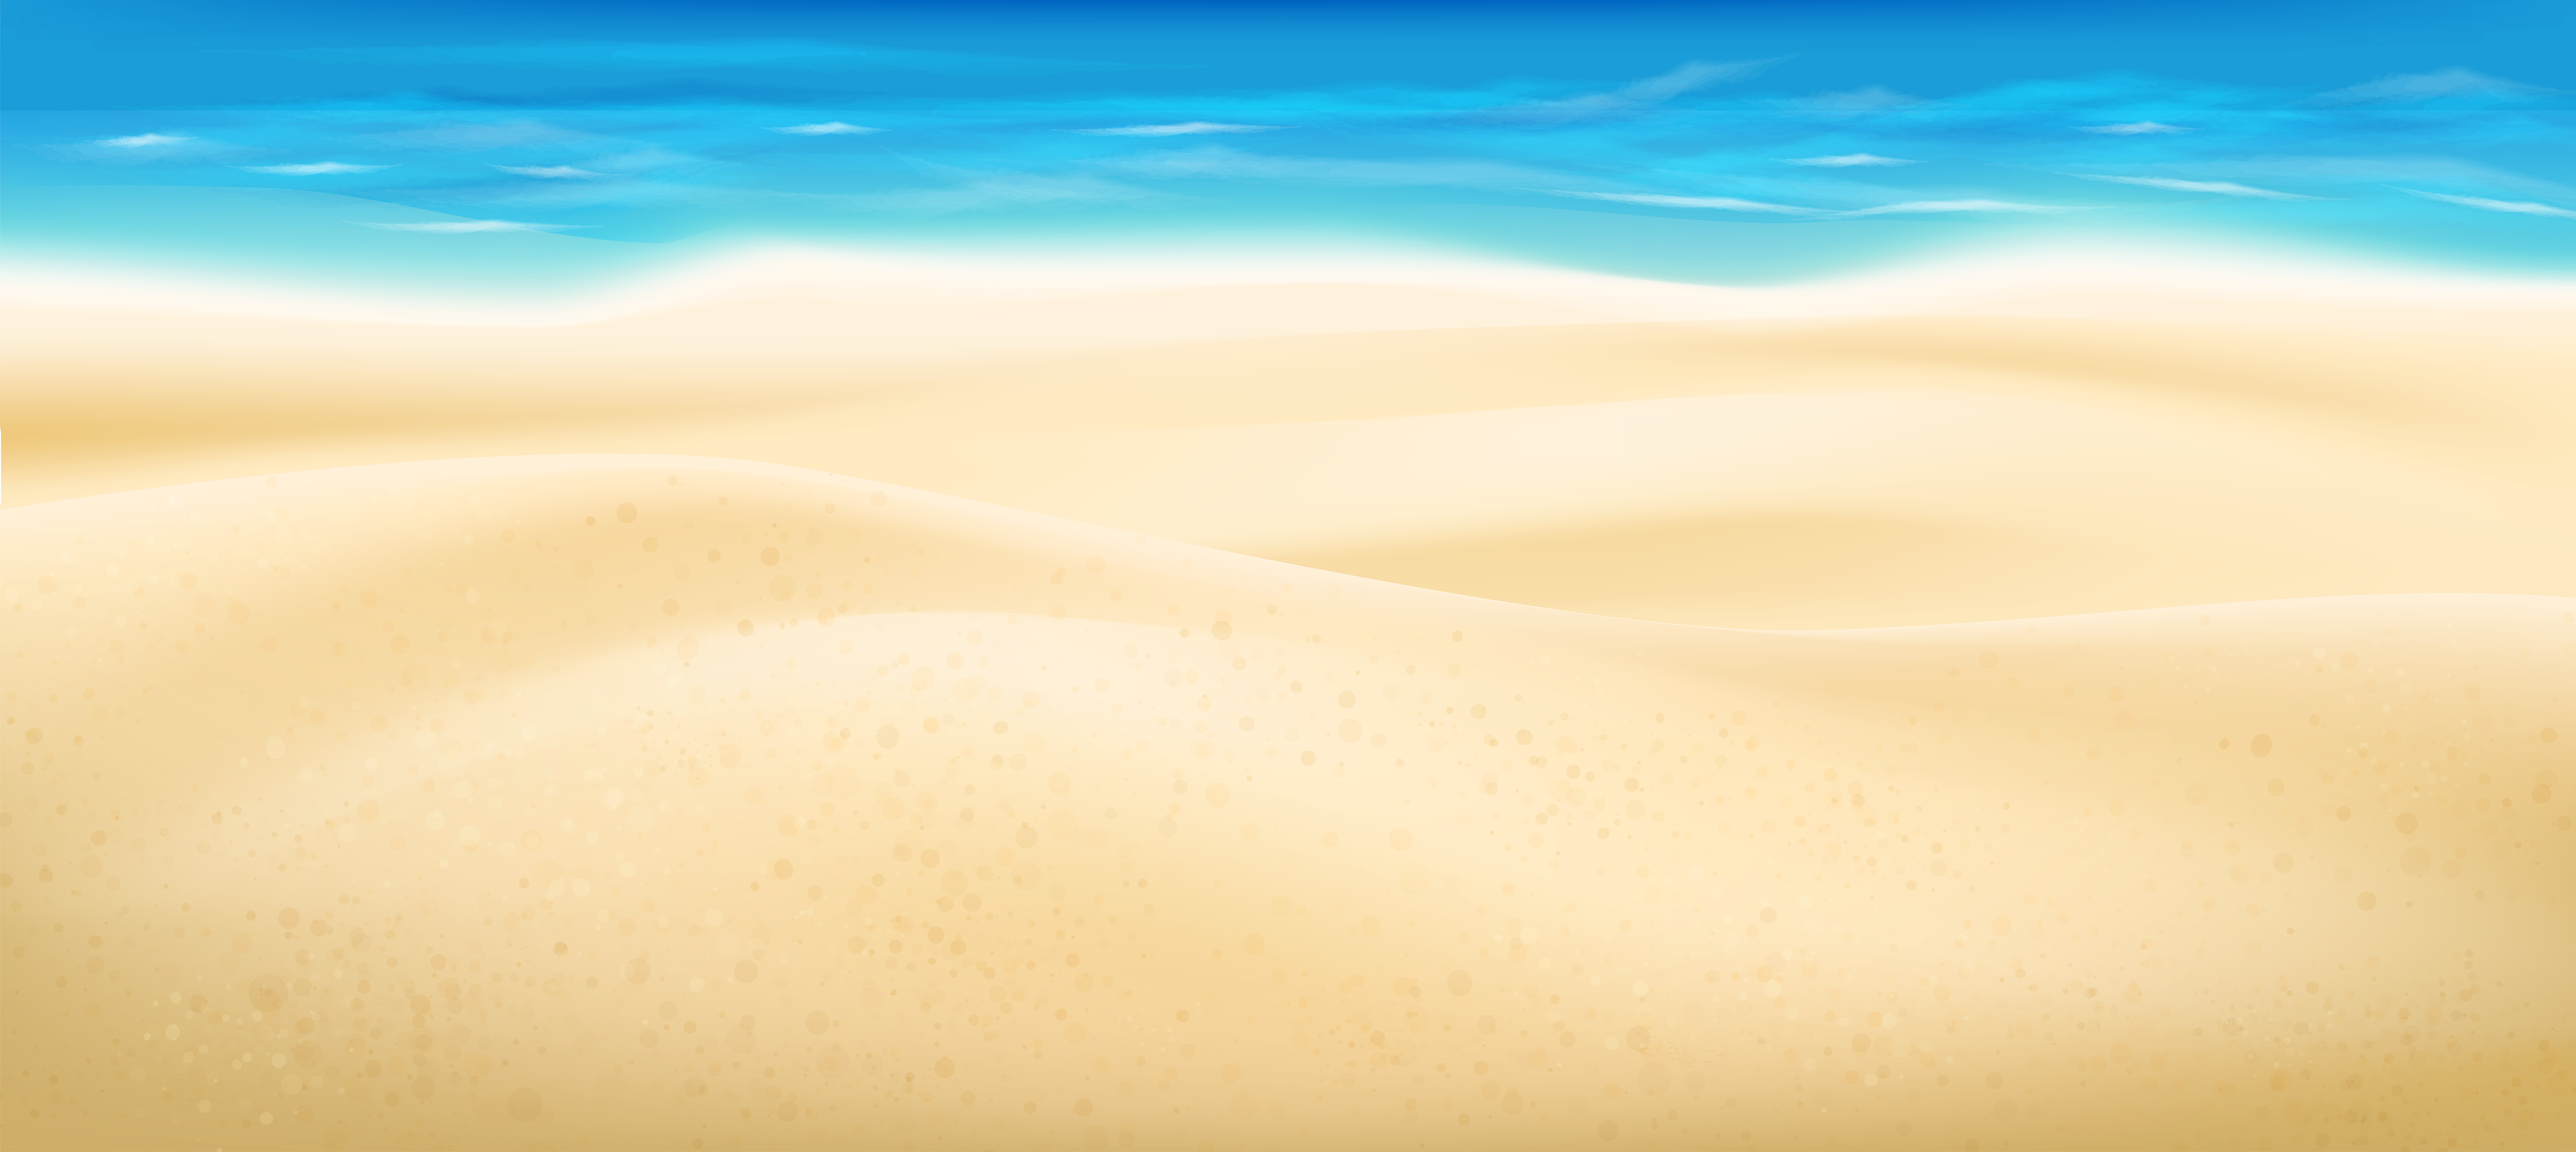 Sand clipart #2, Download drawings